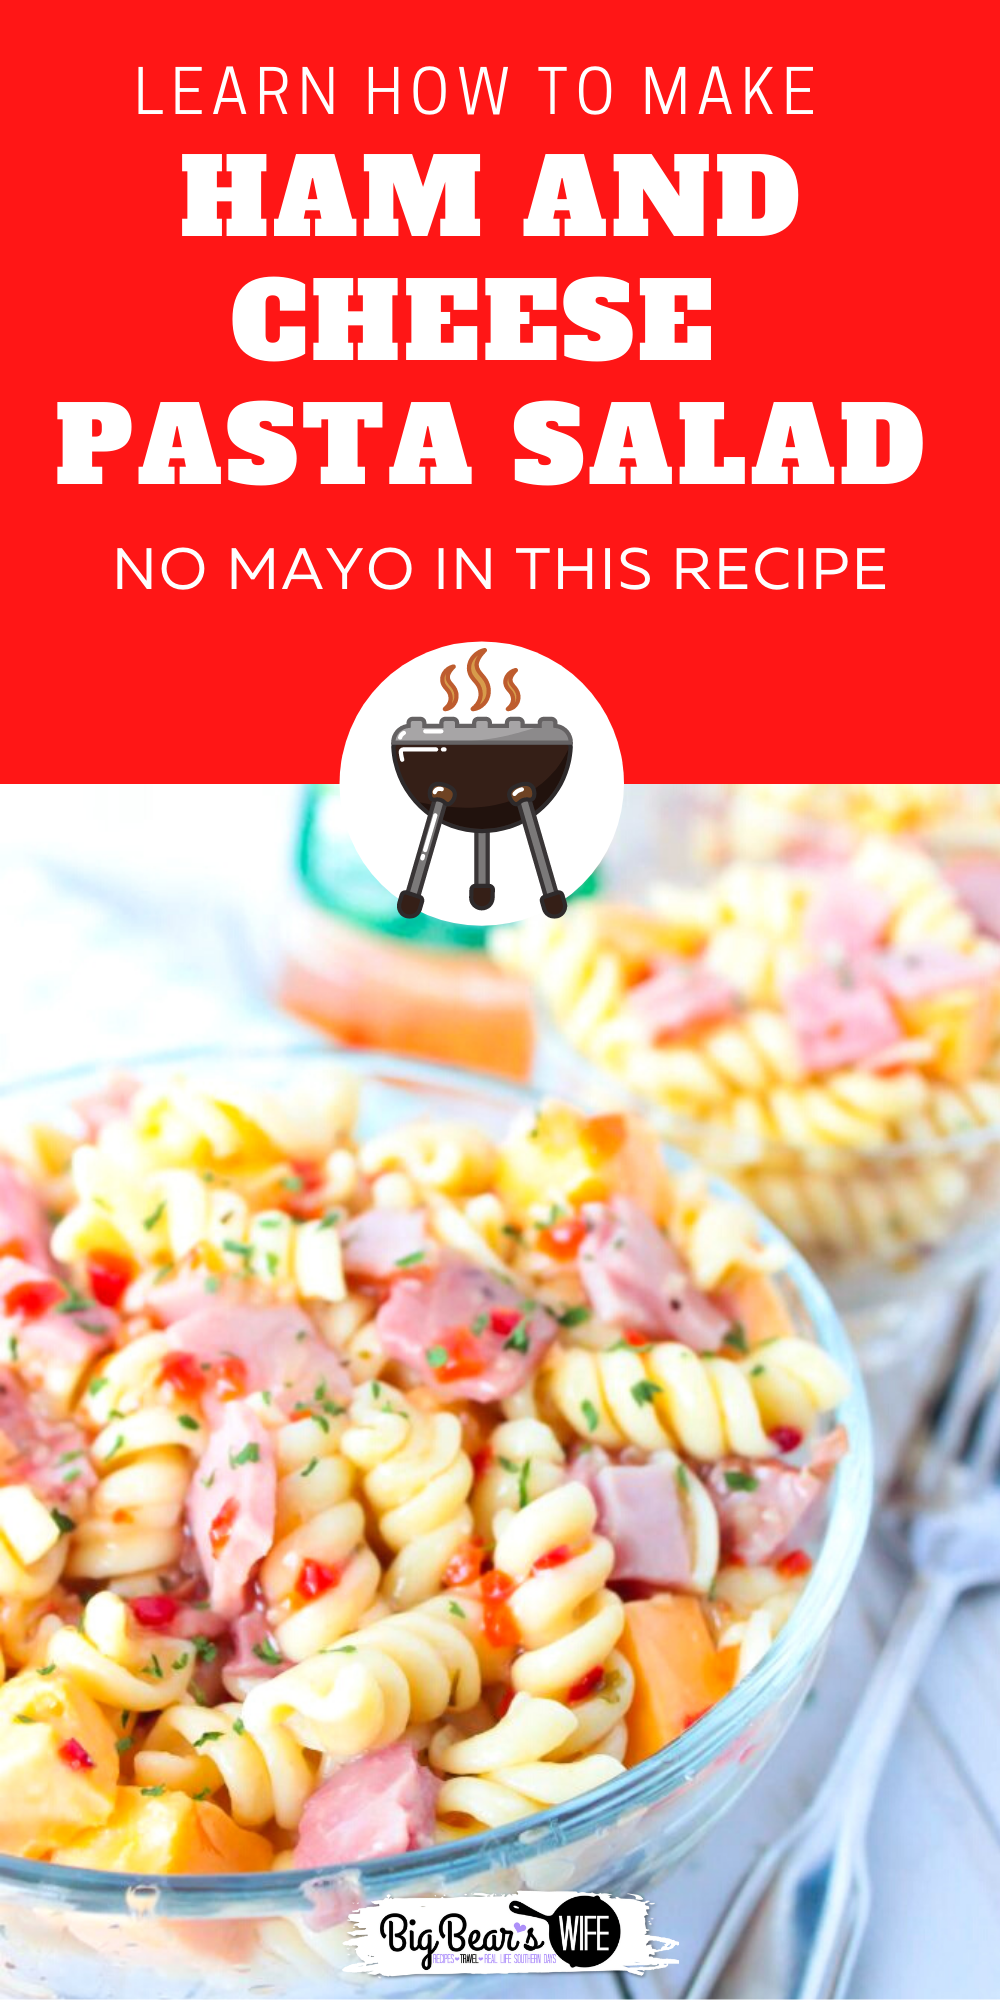 Looking for the perfect pasta salad to take to that family cookout or neighborhood block party? ThisHam and Cheese Pasta Salad would be perfect! Plus, it's made without mayo, so it's safe to set out for a bit! via @bigbearswife